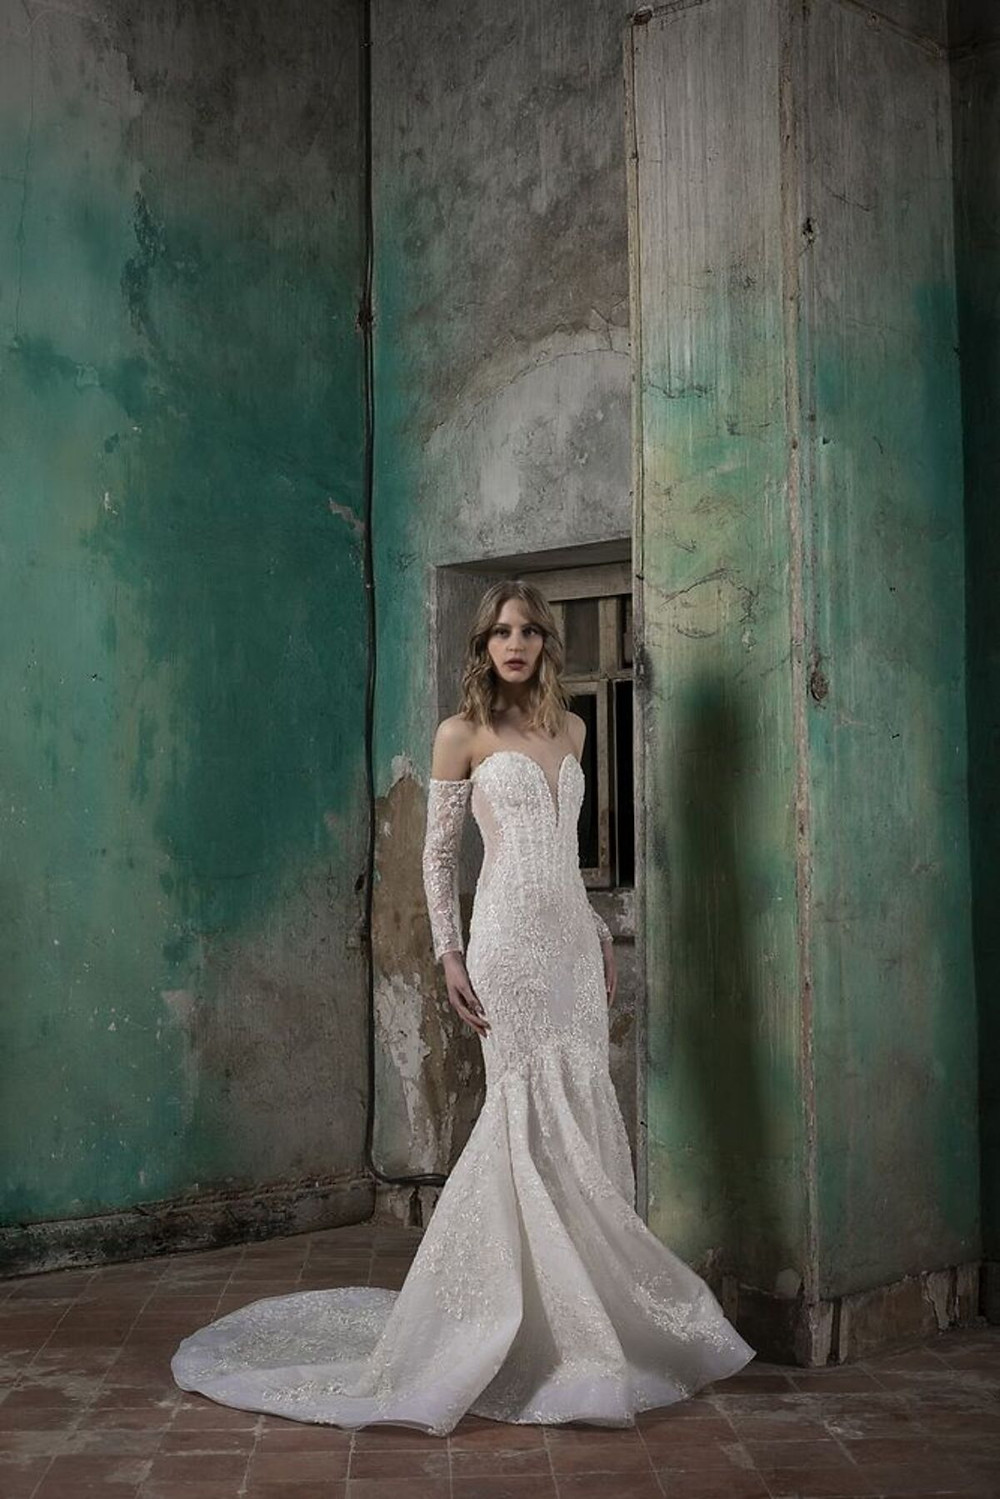 An off-shoulder, long sleeved mermaid wedding gown, intricately embroidered with crystals and featuring a corseted bust